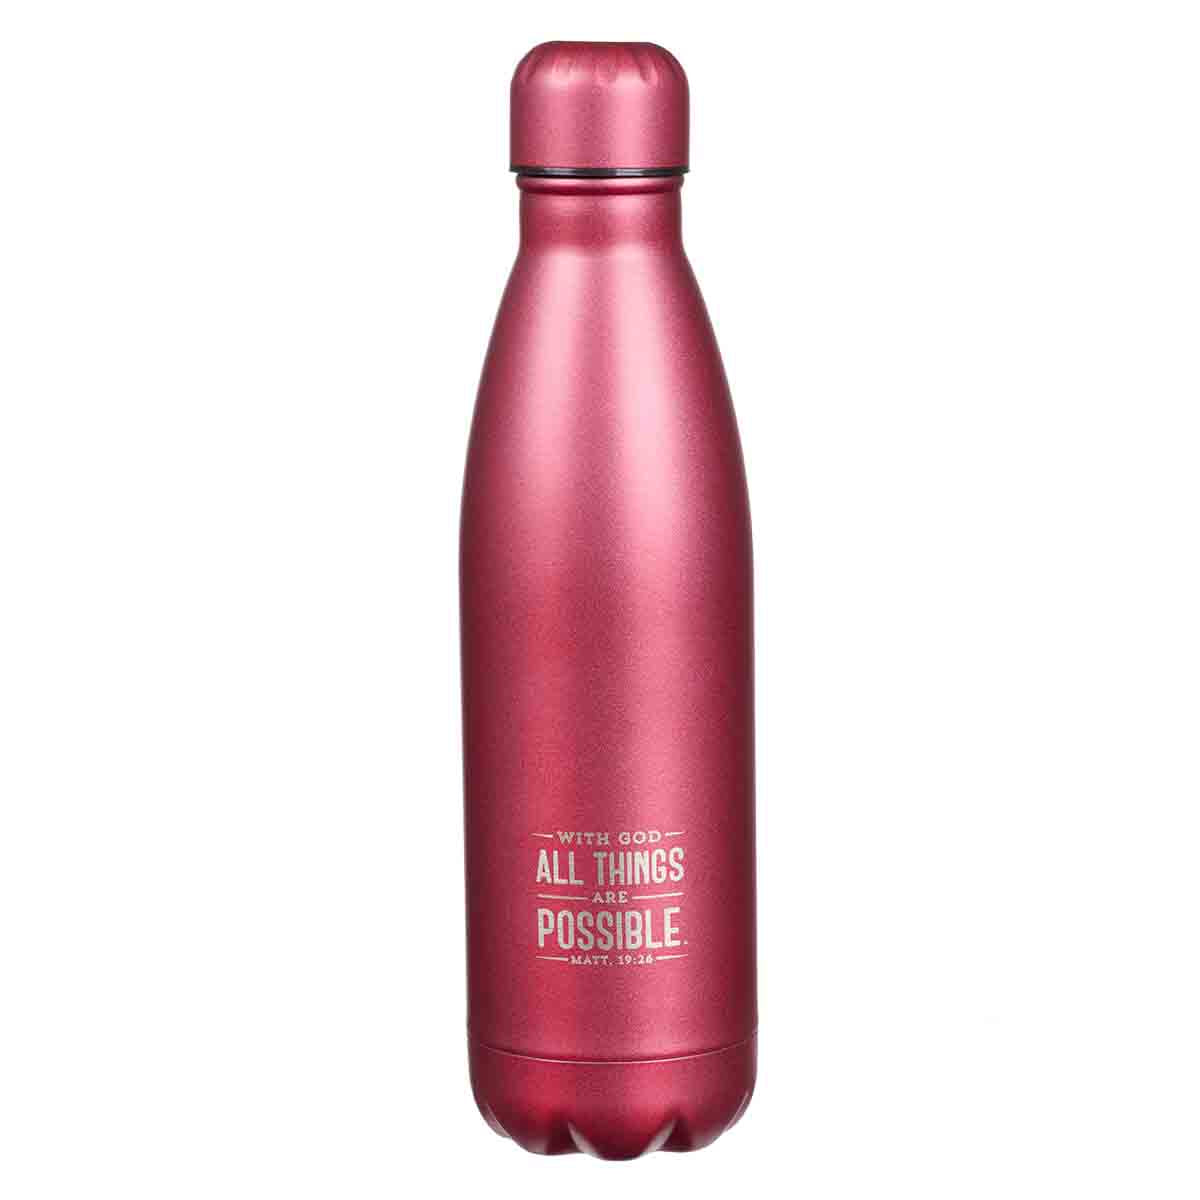 Matthew 19:26 With God All Things Are Possible (Stainless Steel Water Bottle)